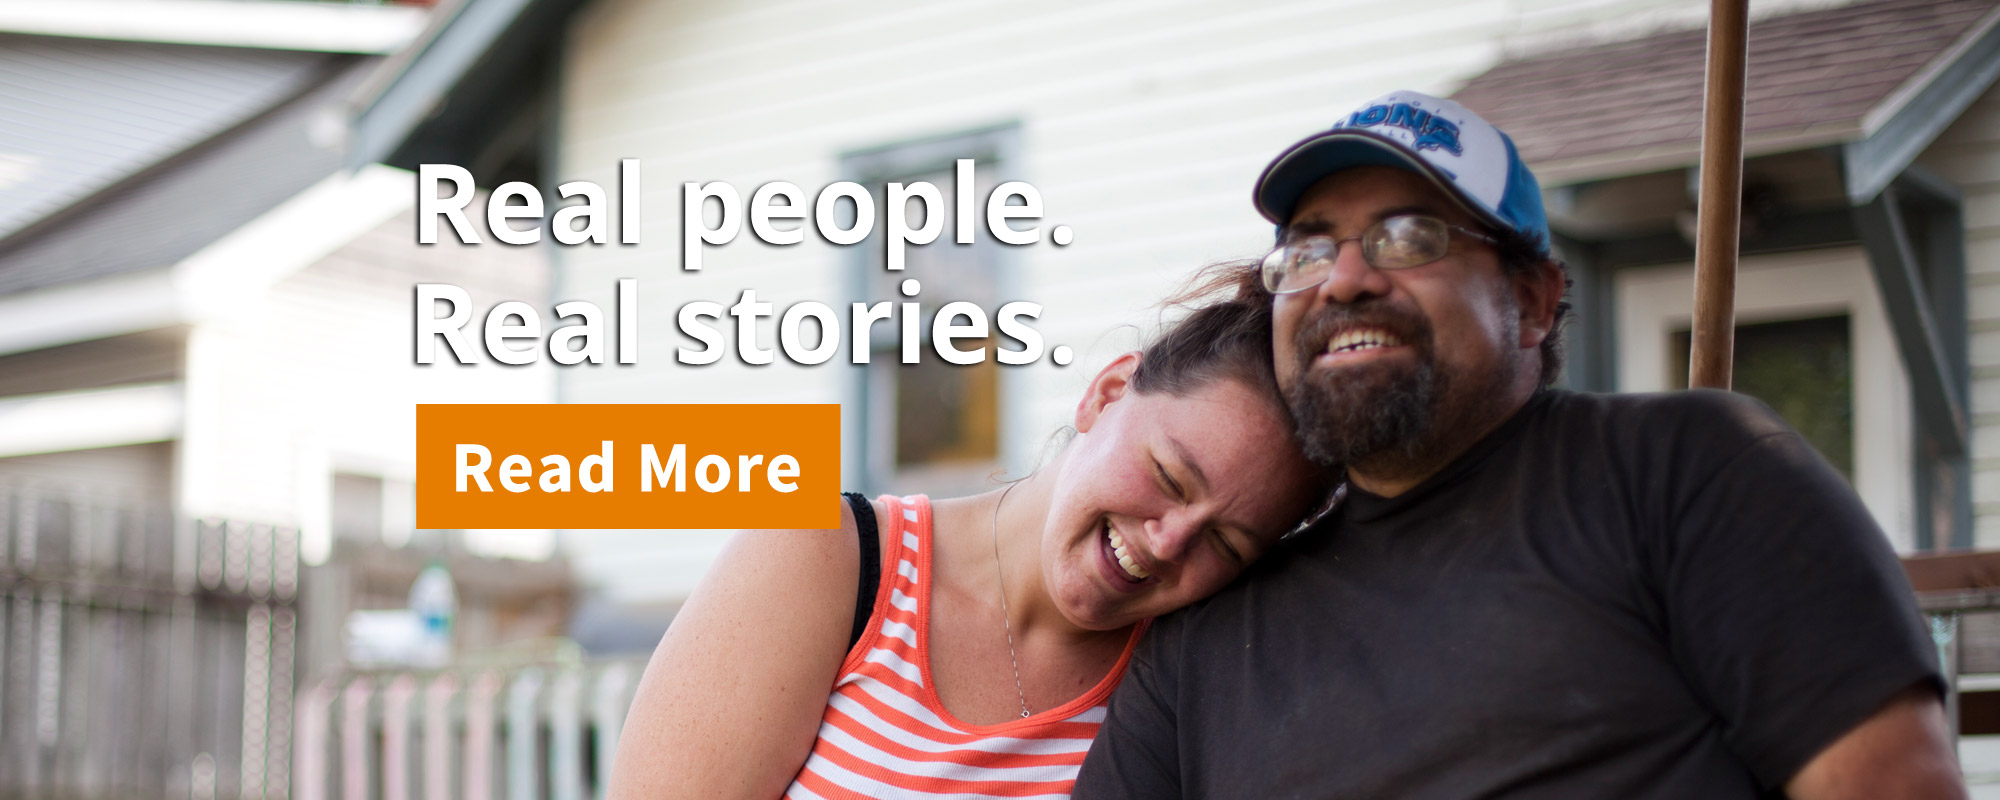 Real People. Real Stories. Read More